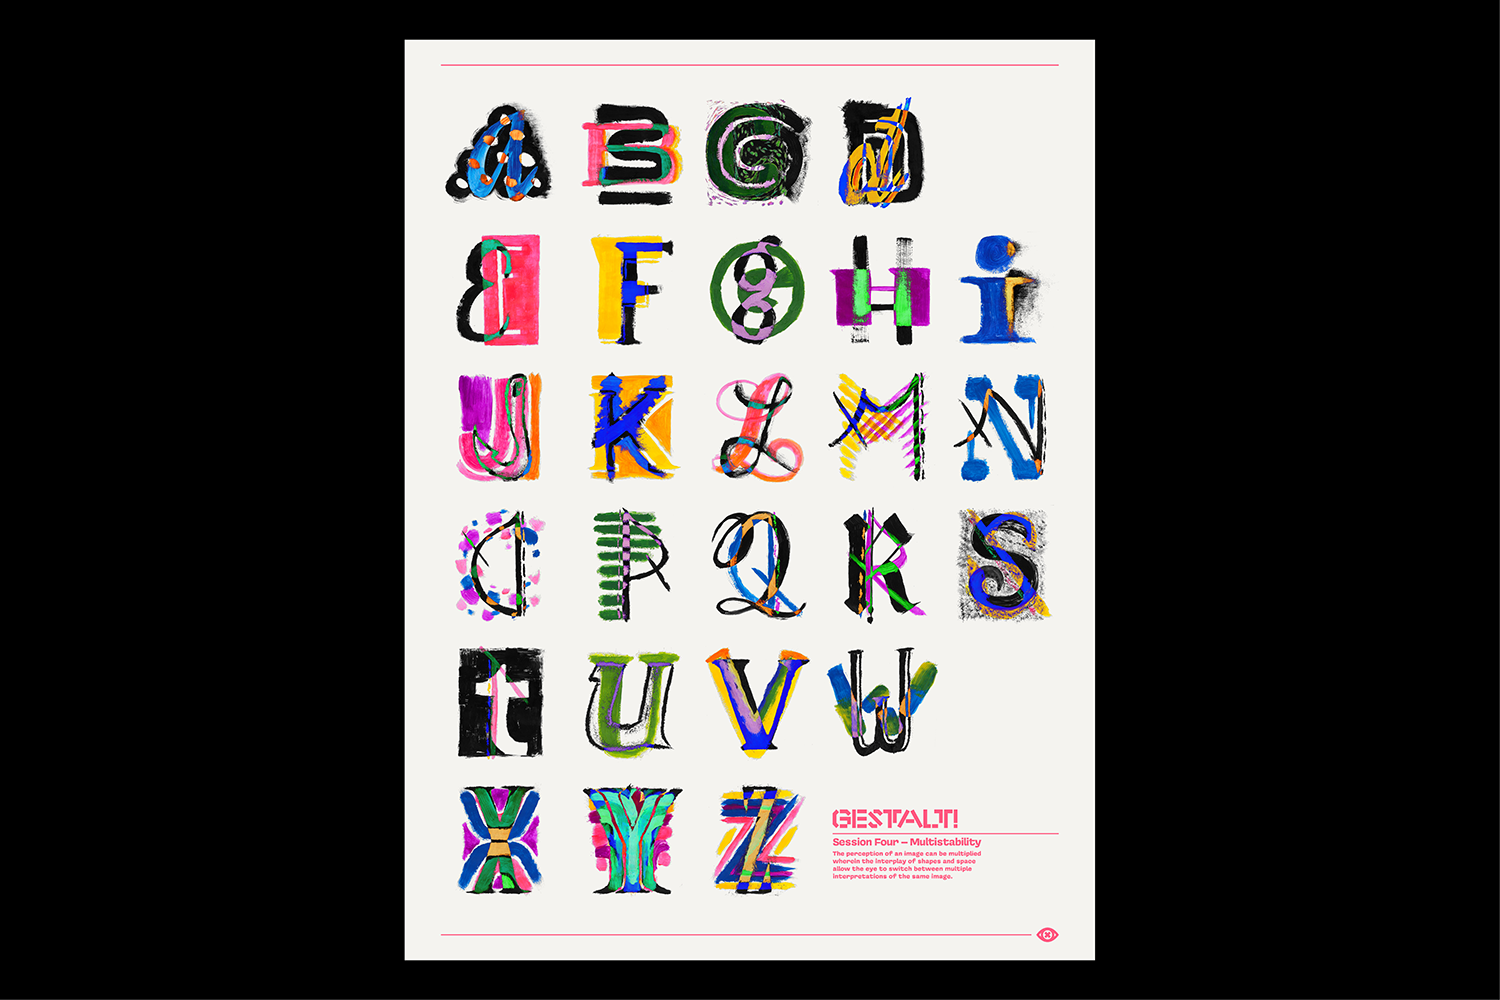 In a Gestalt first, the group left the workshop not knowing what the final letterforms would look like - they would only be revealed to the group about a week after the session concluded.